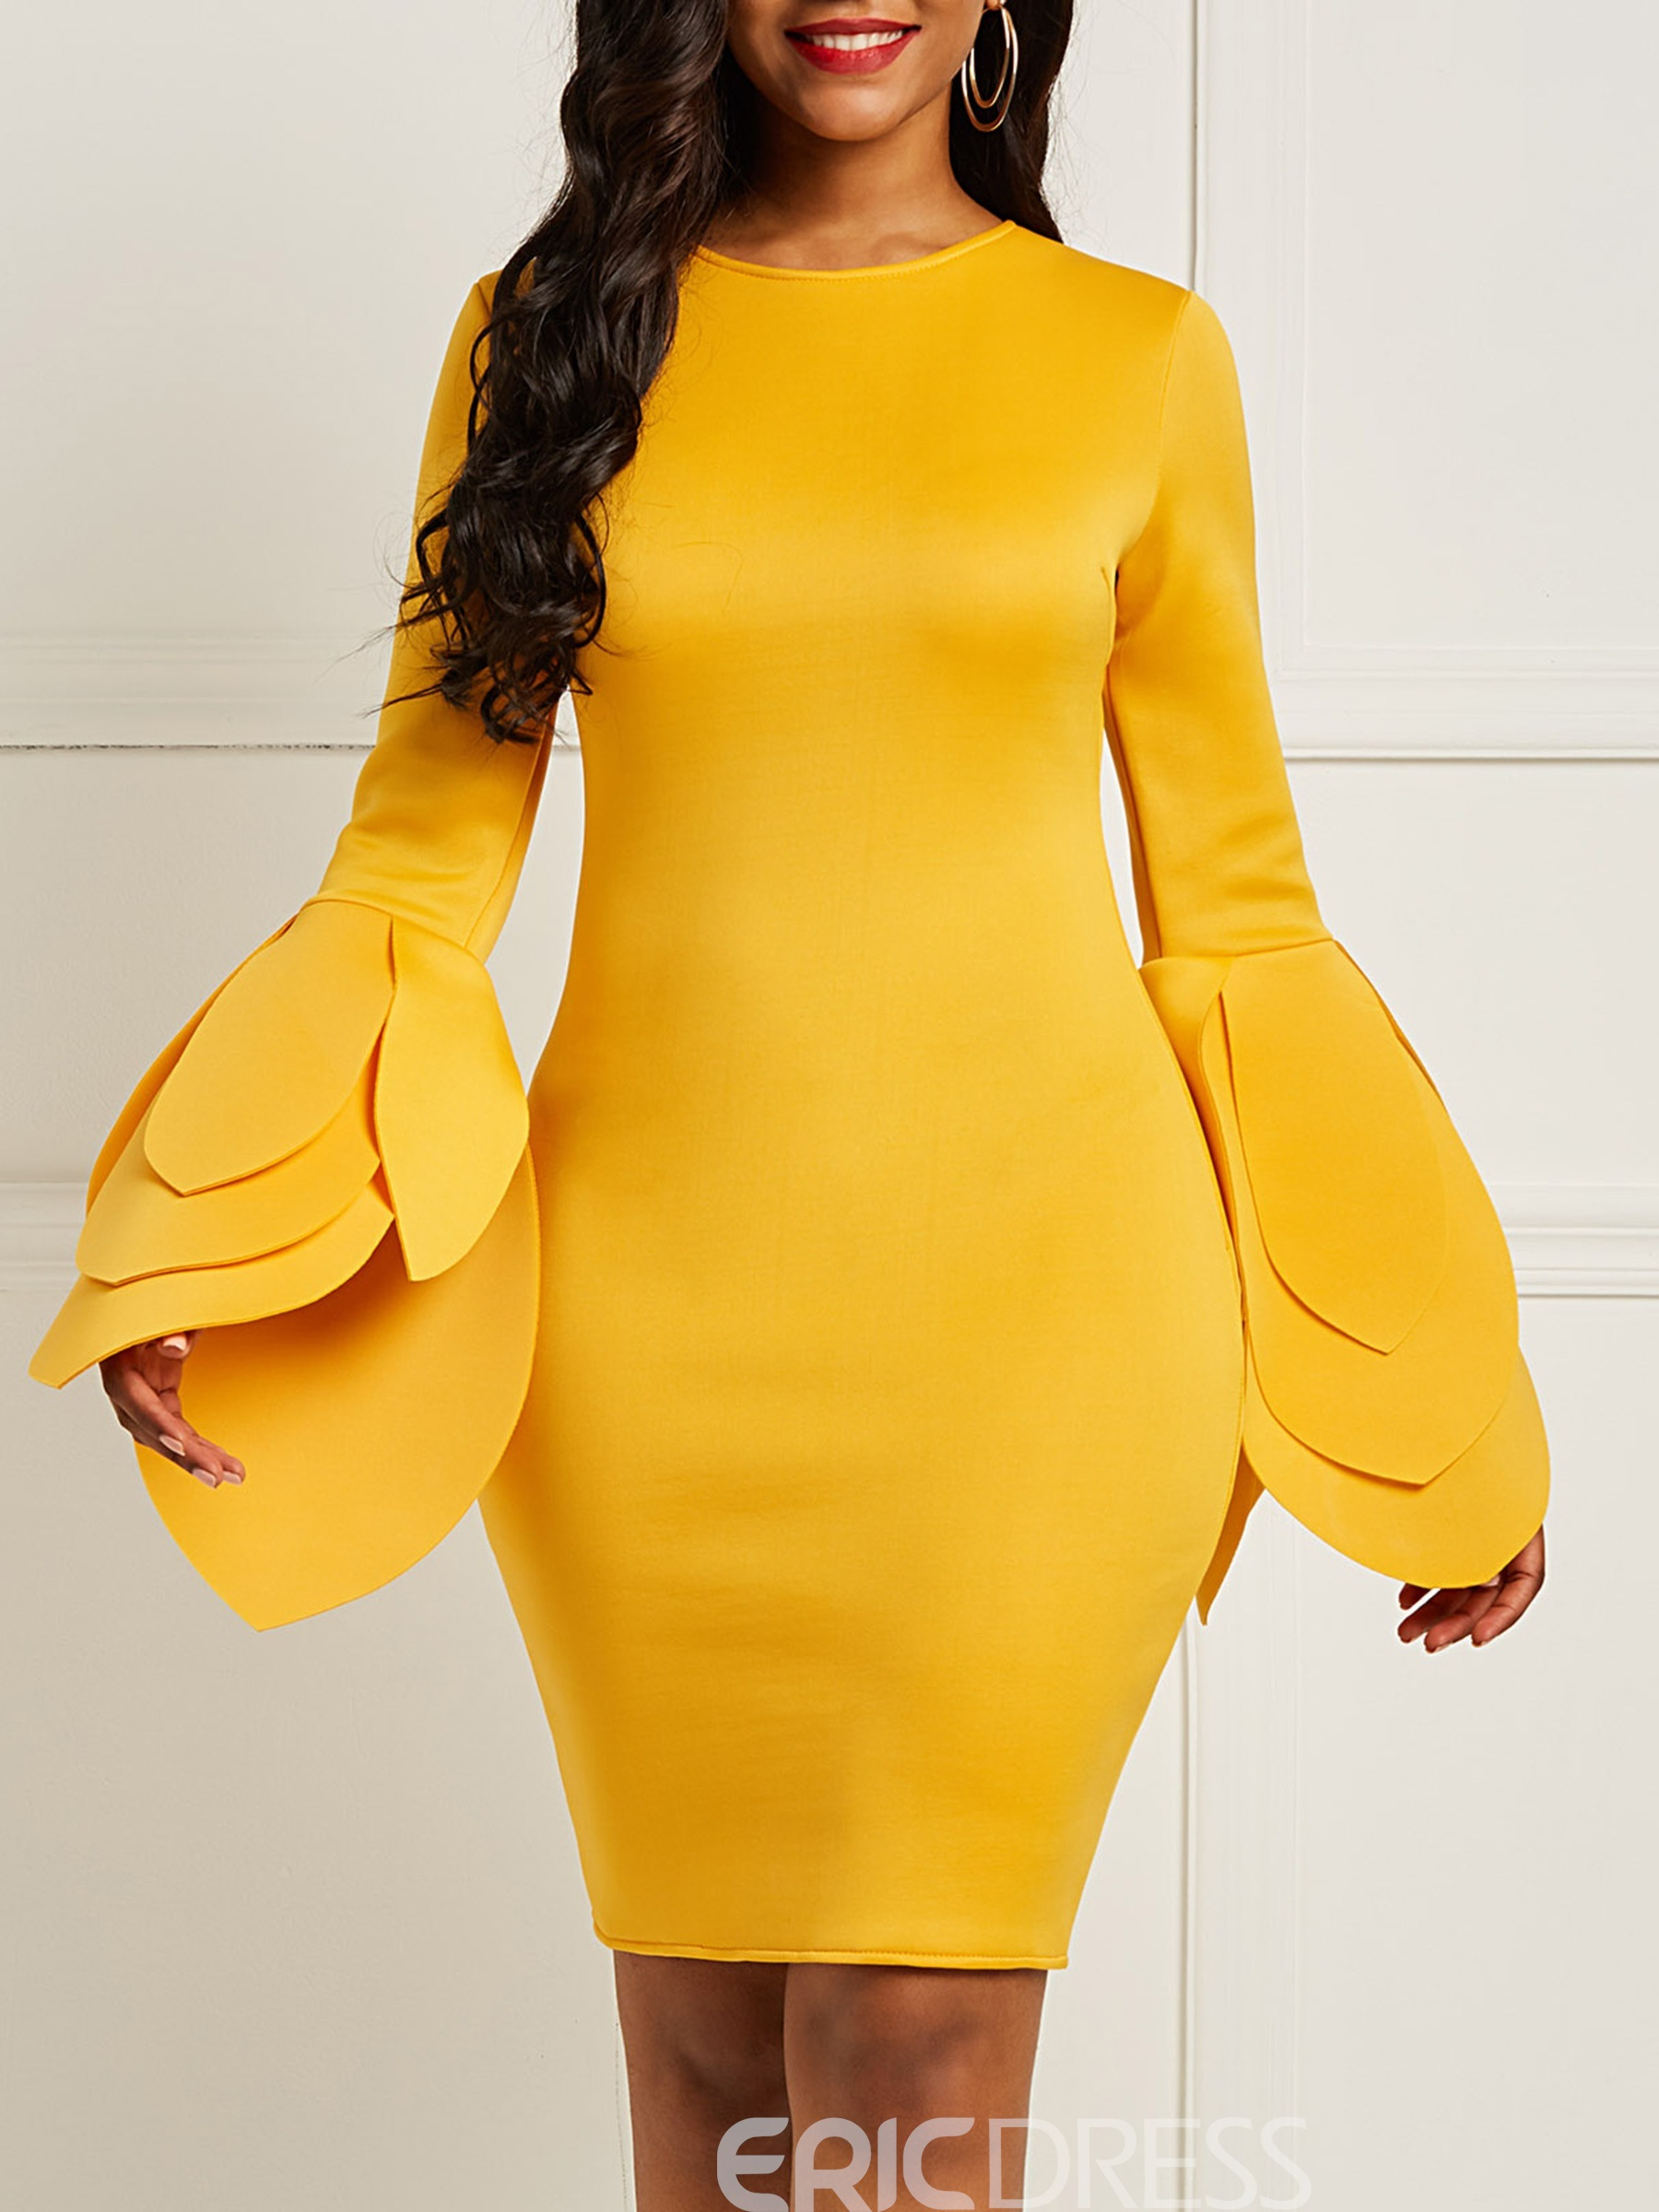 ericdress robe moulante manches longues jaune femmes